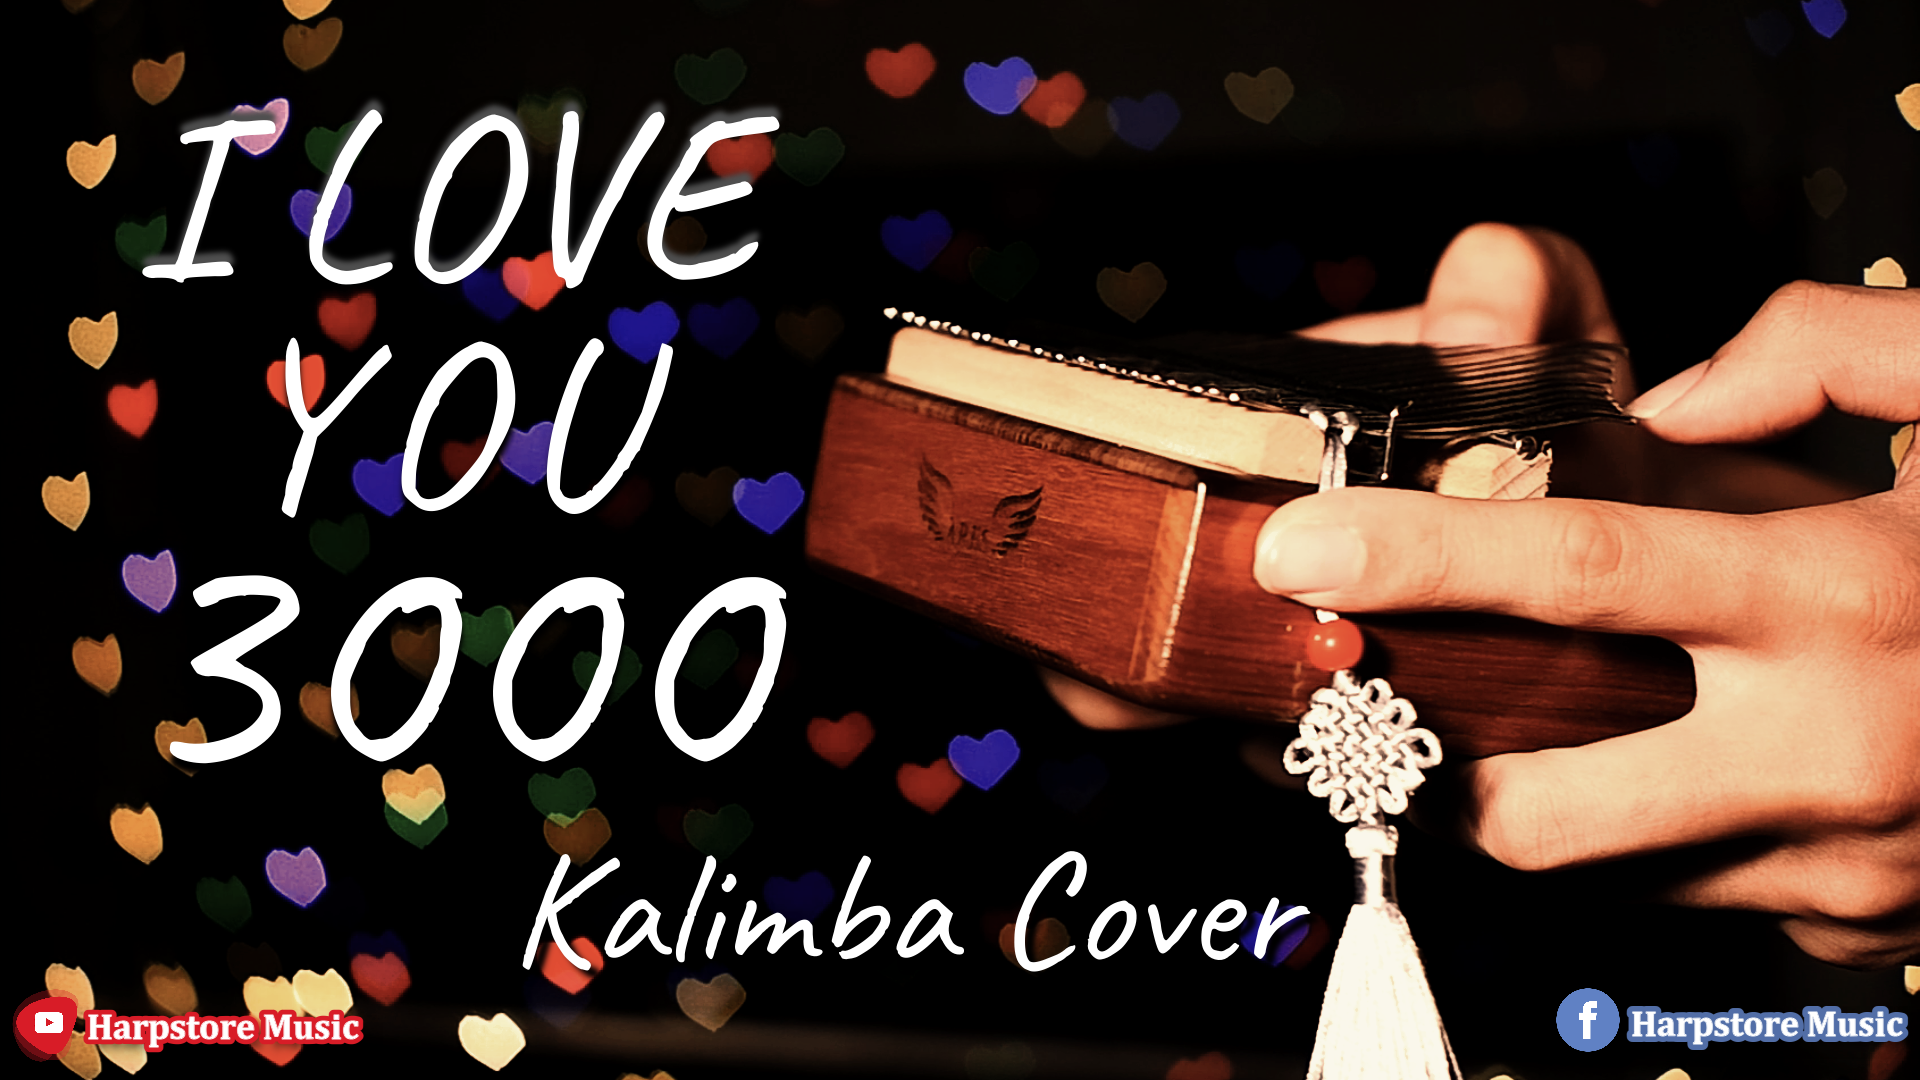 I LOVE YOU 3000 KALIMBA COVER